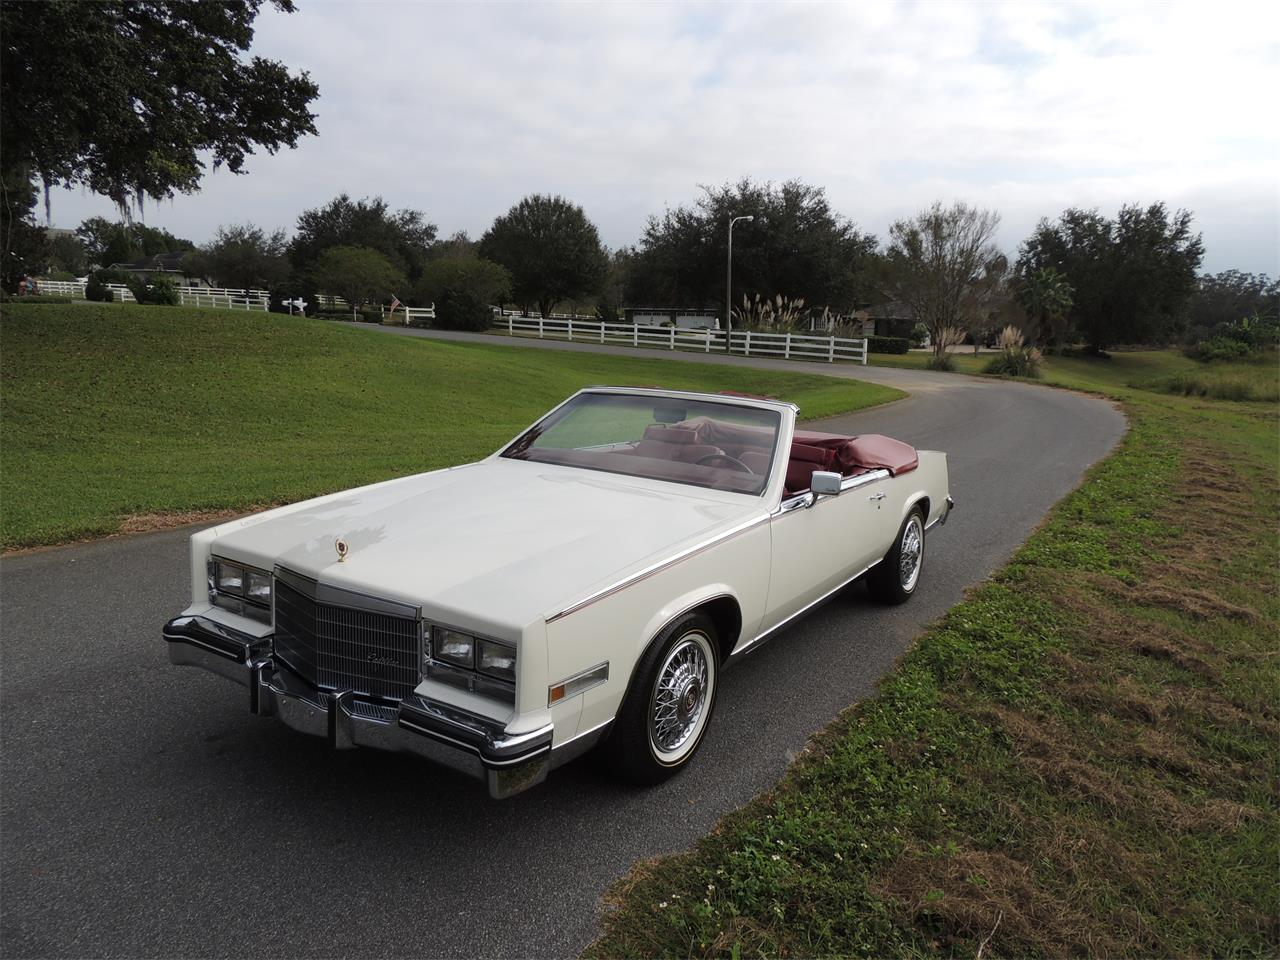 Large Picture of 1985 Cadillac Eldorado Biarritz Offered by a Private Seller - MDP6